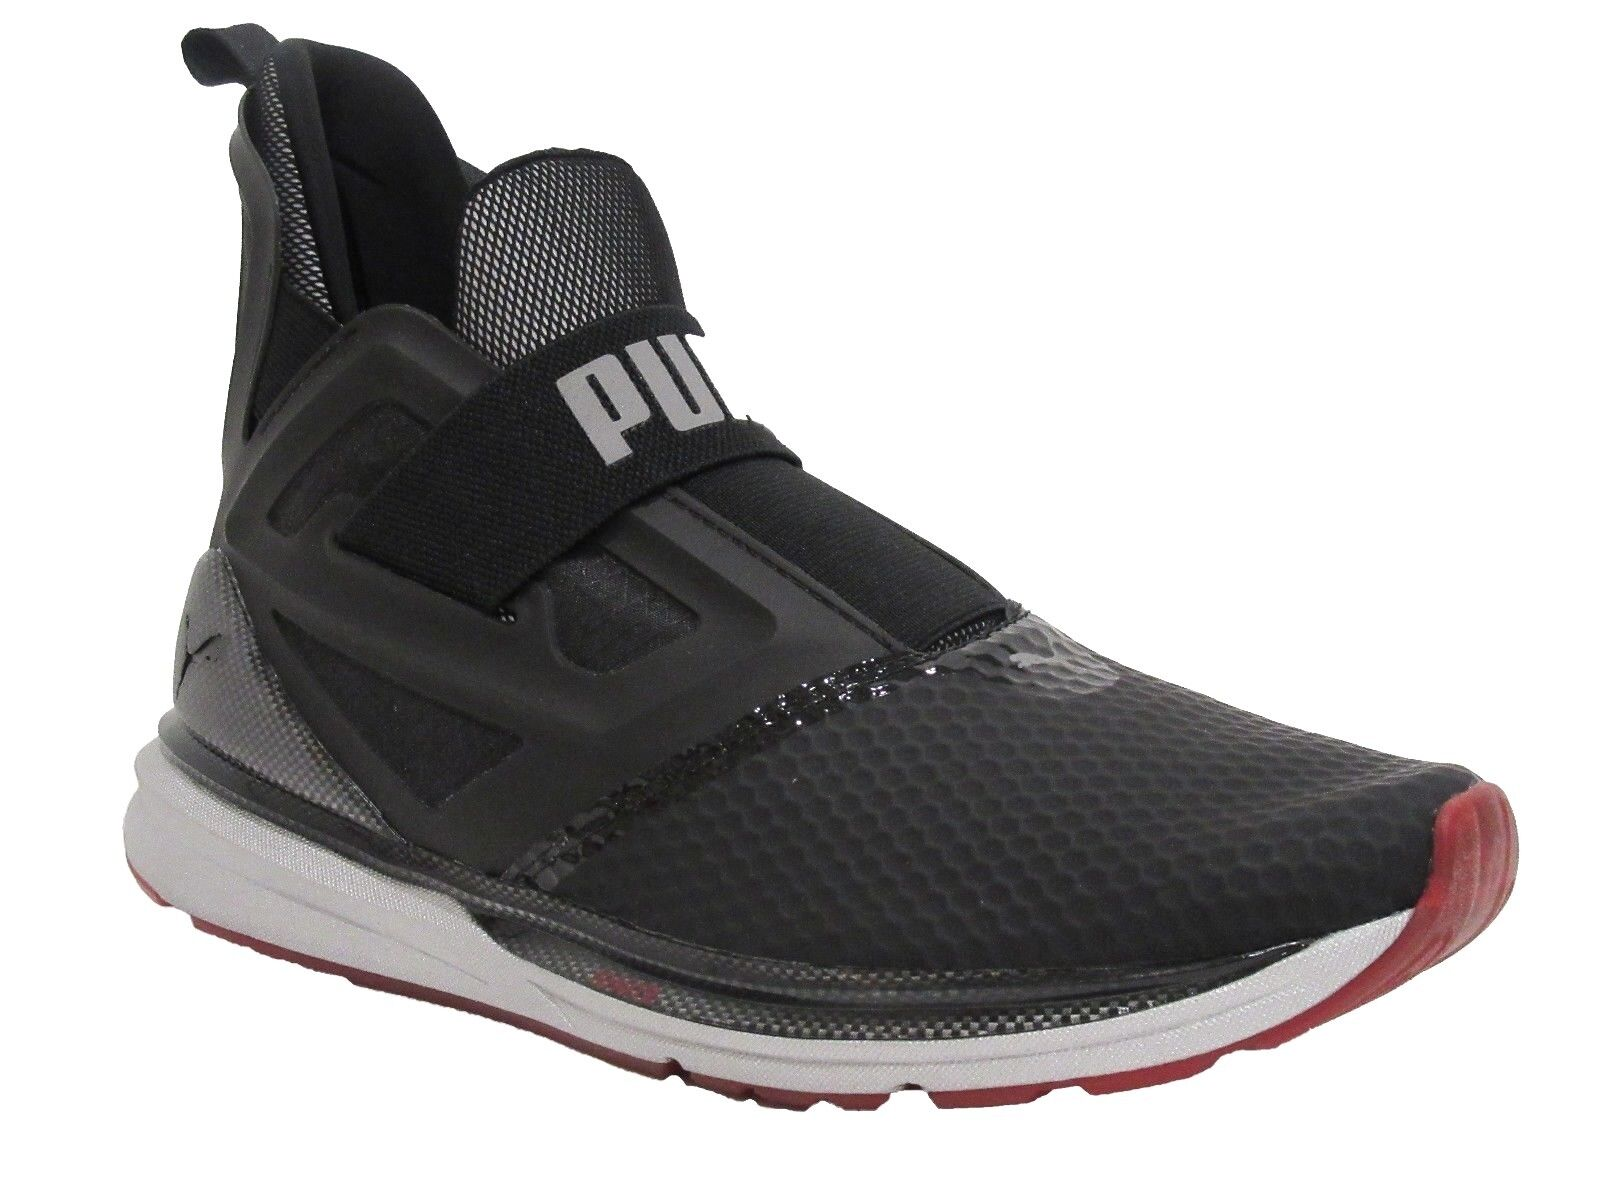 Homme PUMA Ignite Limitless Extreme Hi-Tech Noir Oxford